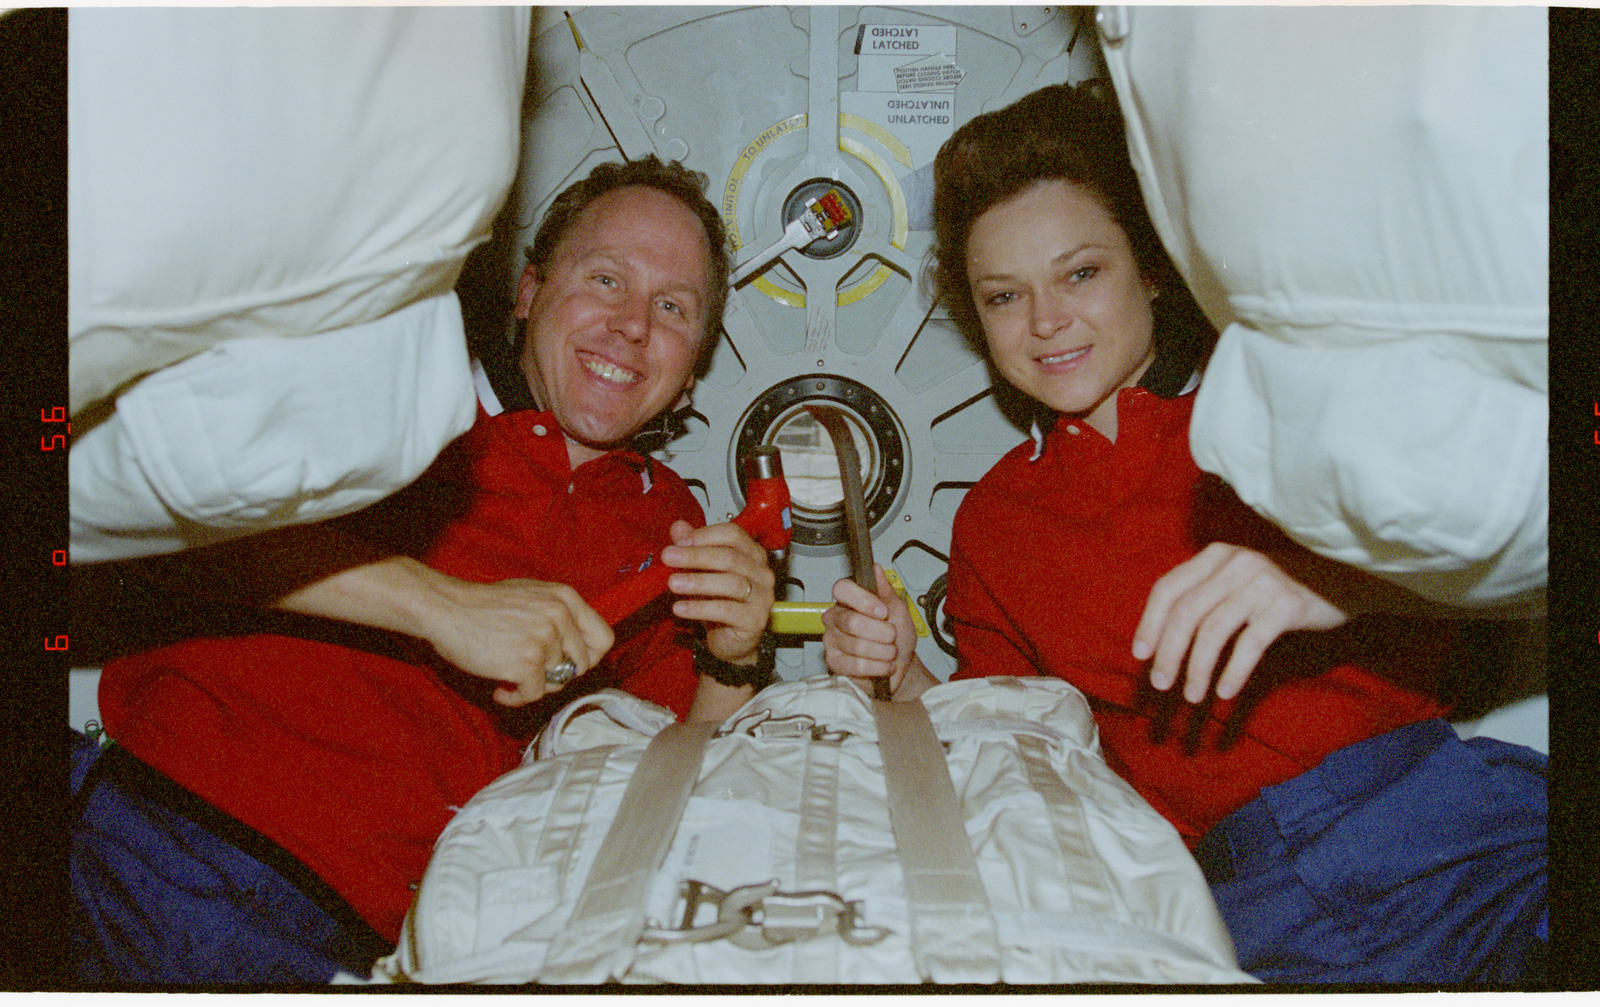 STS080-317-016 - STS-080 - Mission Specialists Jones and Jernigan pose for photos in airlock